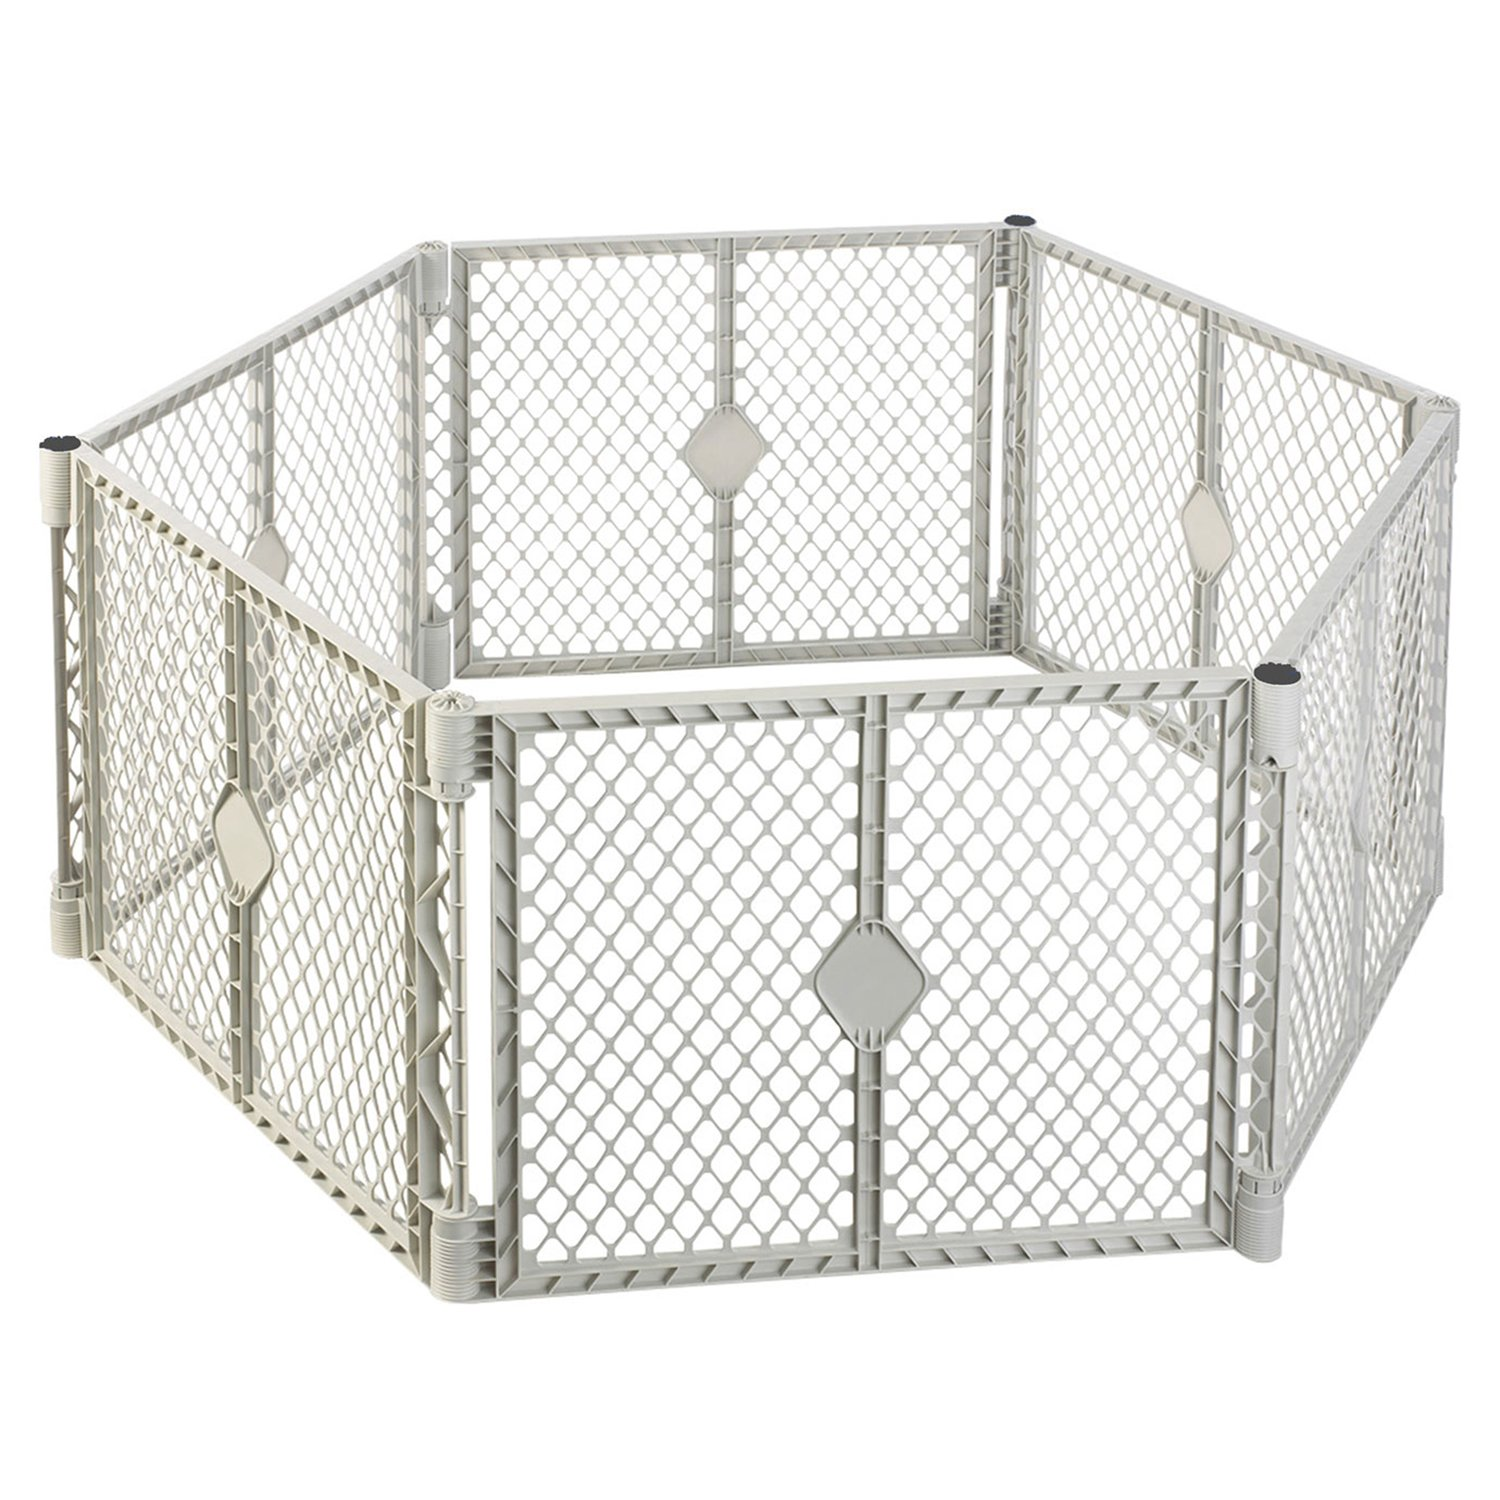 North States SUPERYARD XT Baby/Pet Gate & Play Yard by North States (Image #1)